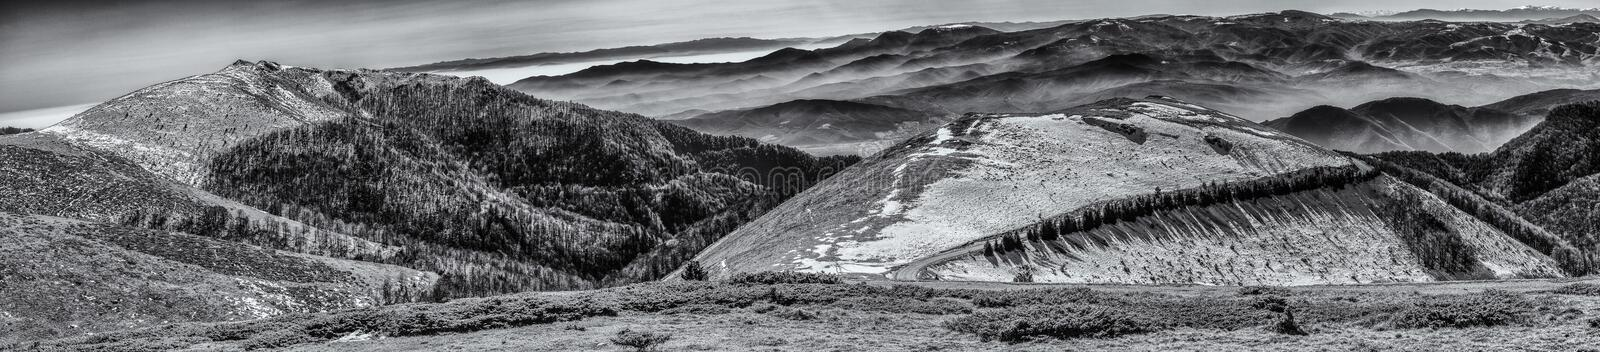 Collines d'hiver photo stock